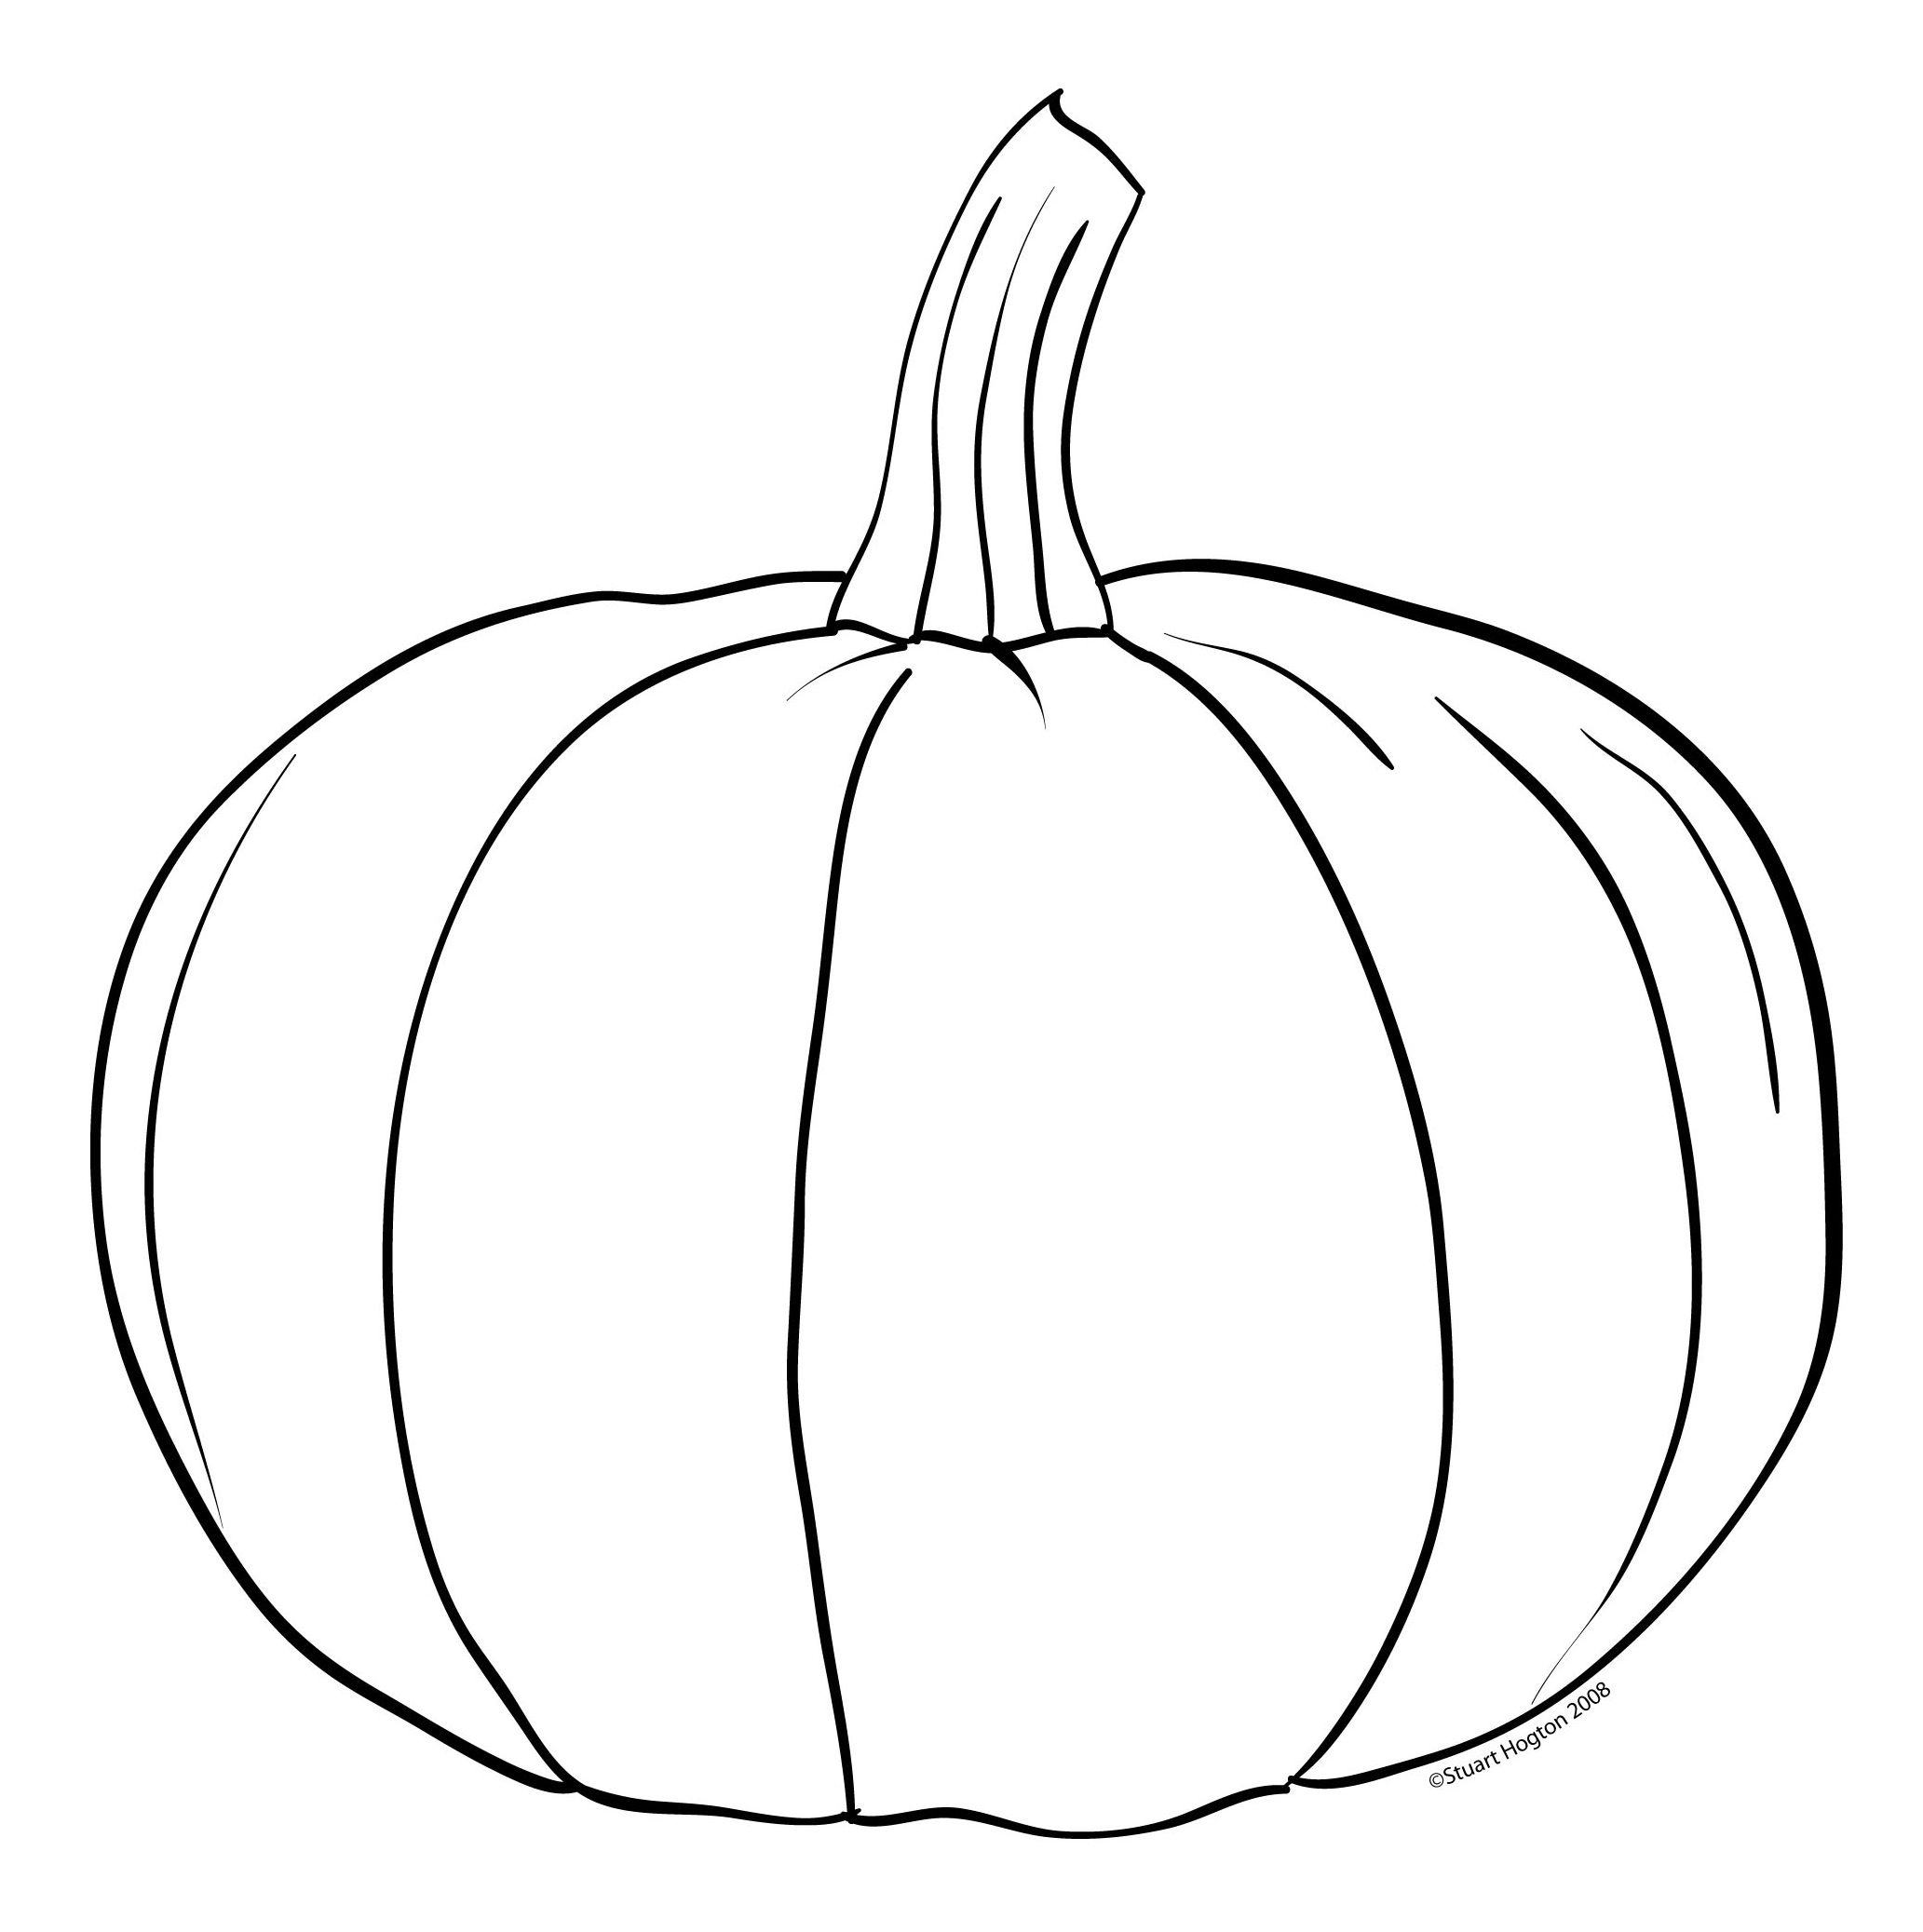 Line Drawing Zucchini : Felt jack o lantern pumpkin and ghost faces making life